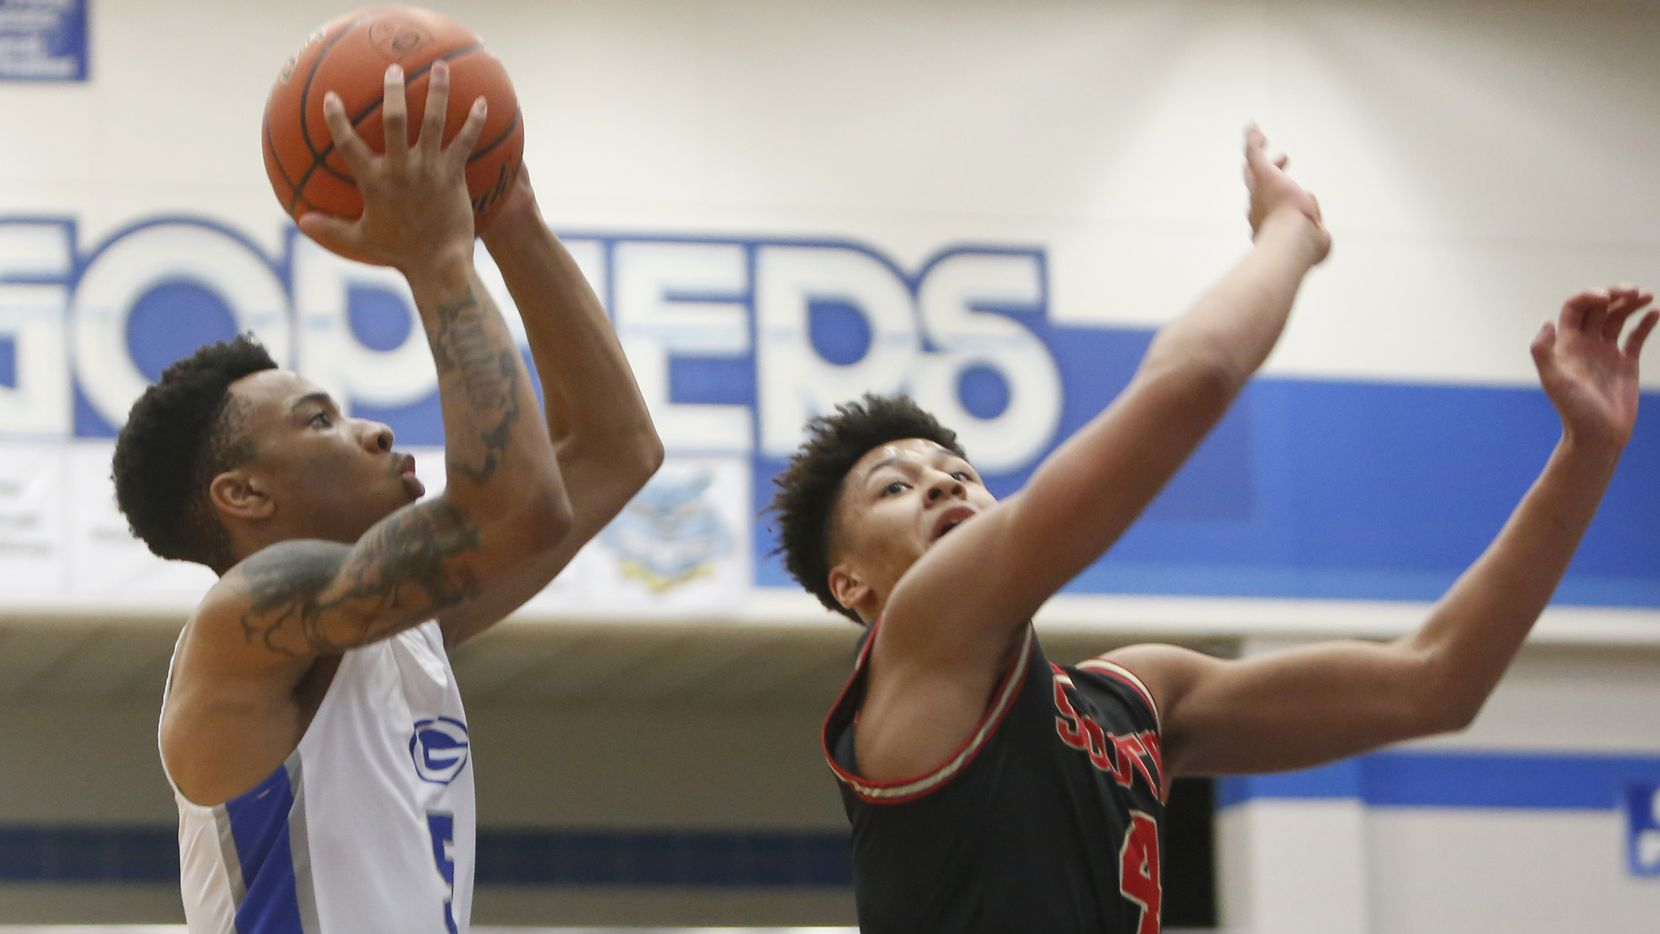 Grand Prairie's Donovan Newton (left) drives to the basket as he is defended by South Grand Prairie's Khaden Bennett during Grand Prairie's 72-68 win Saturday at Grand Prairie High School.  (Steve Hamm/ Special Contributor)